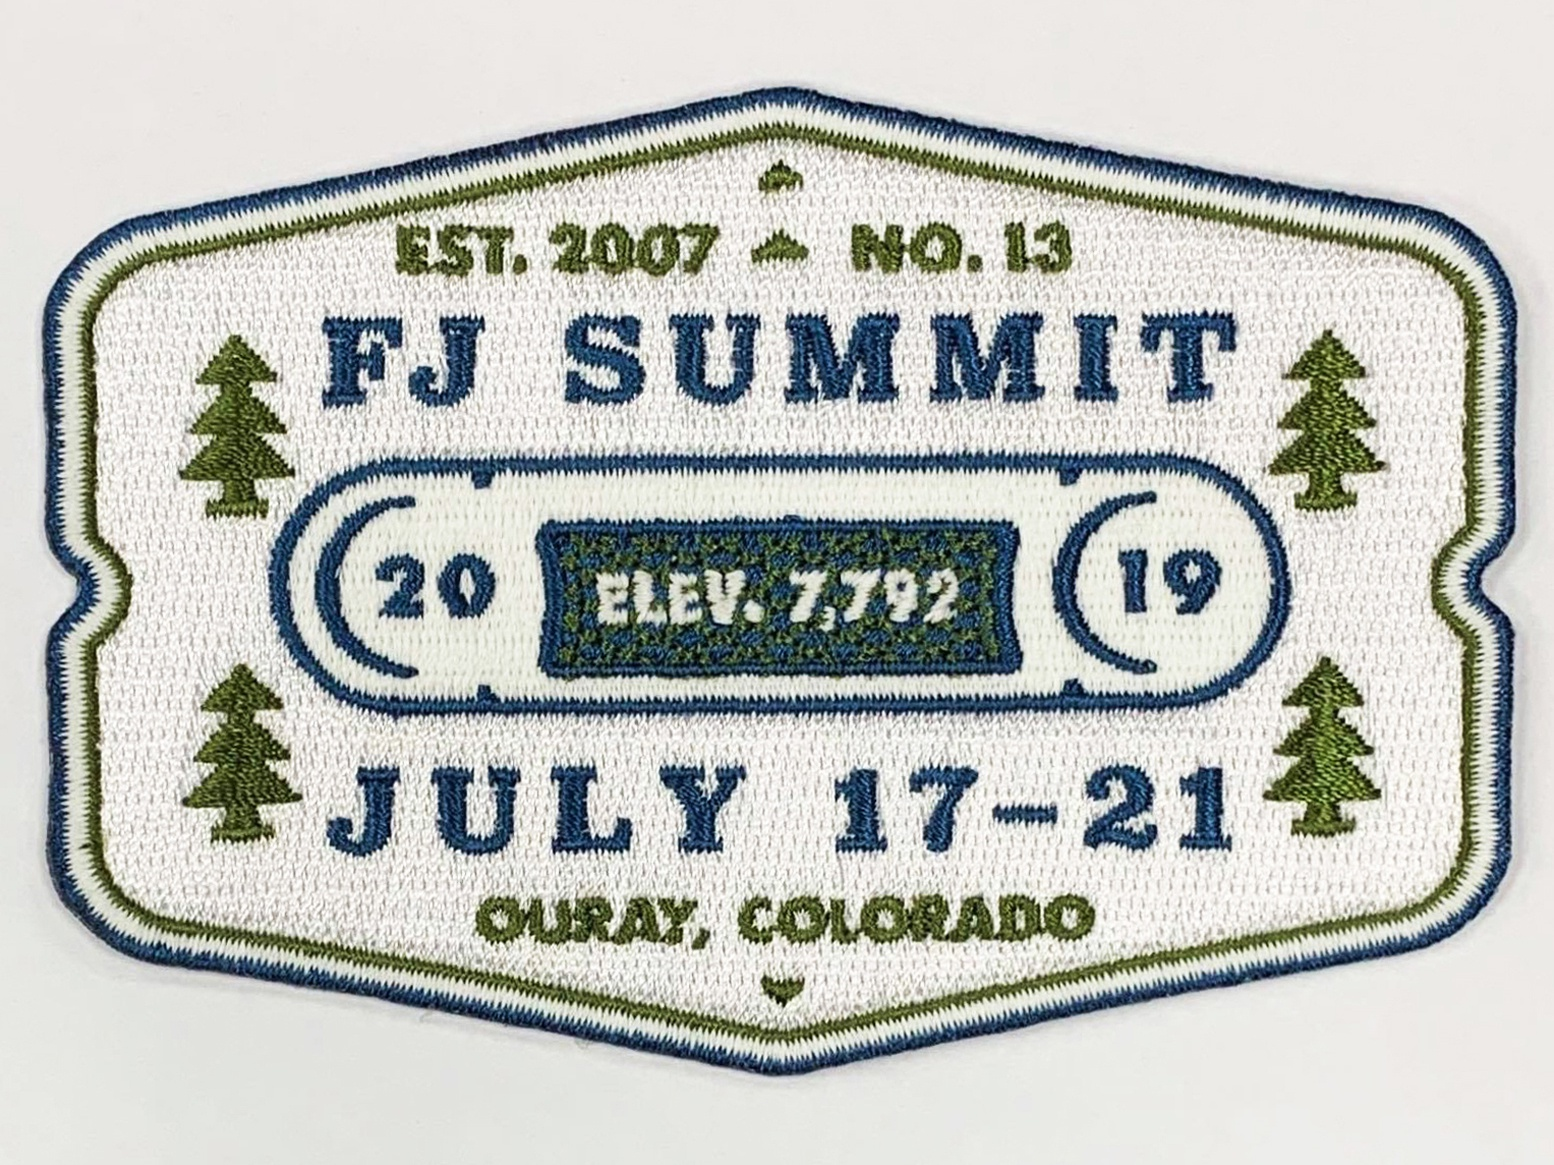 FJ Summit 2019 badge trees tree embroidery patch colorado co ouray fjsummit fj summit